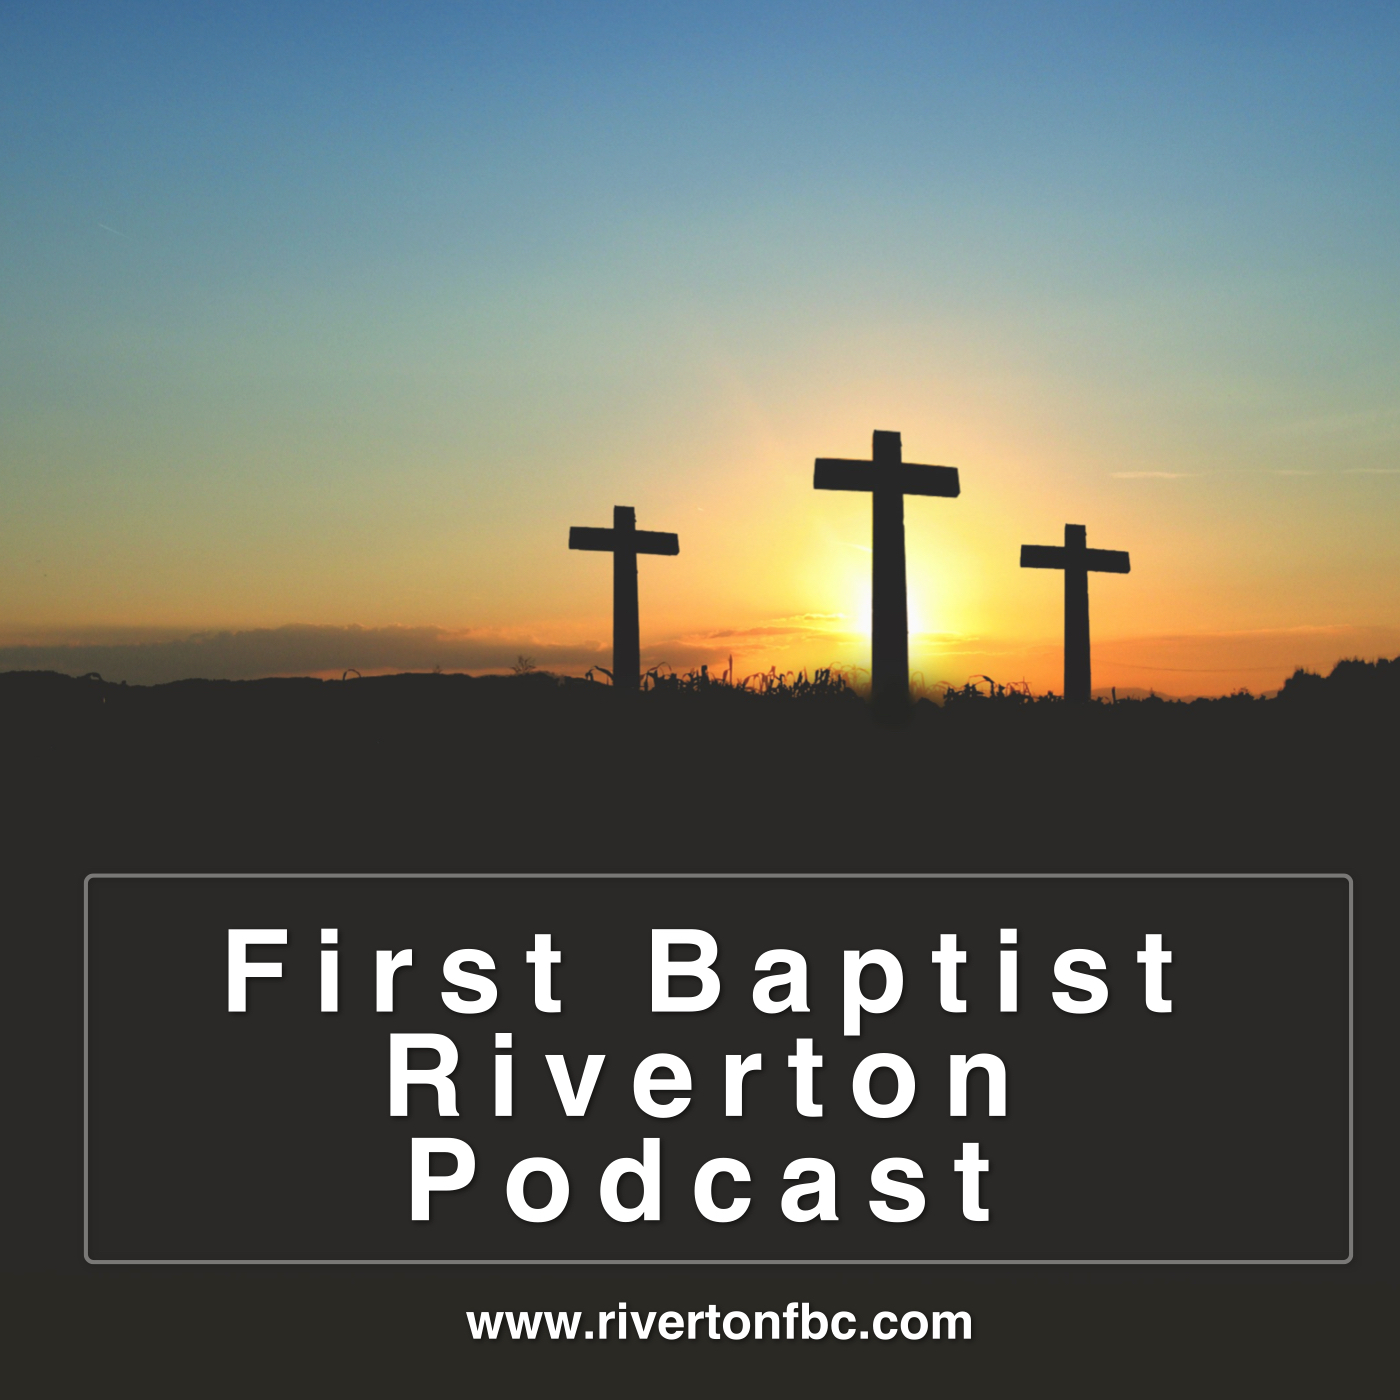 FBCR Podcast EP74 - Sunday Message from Bro. Michael Pearce